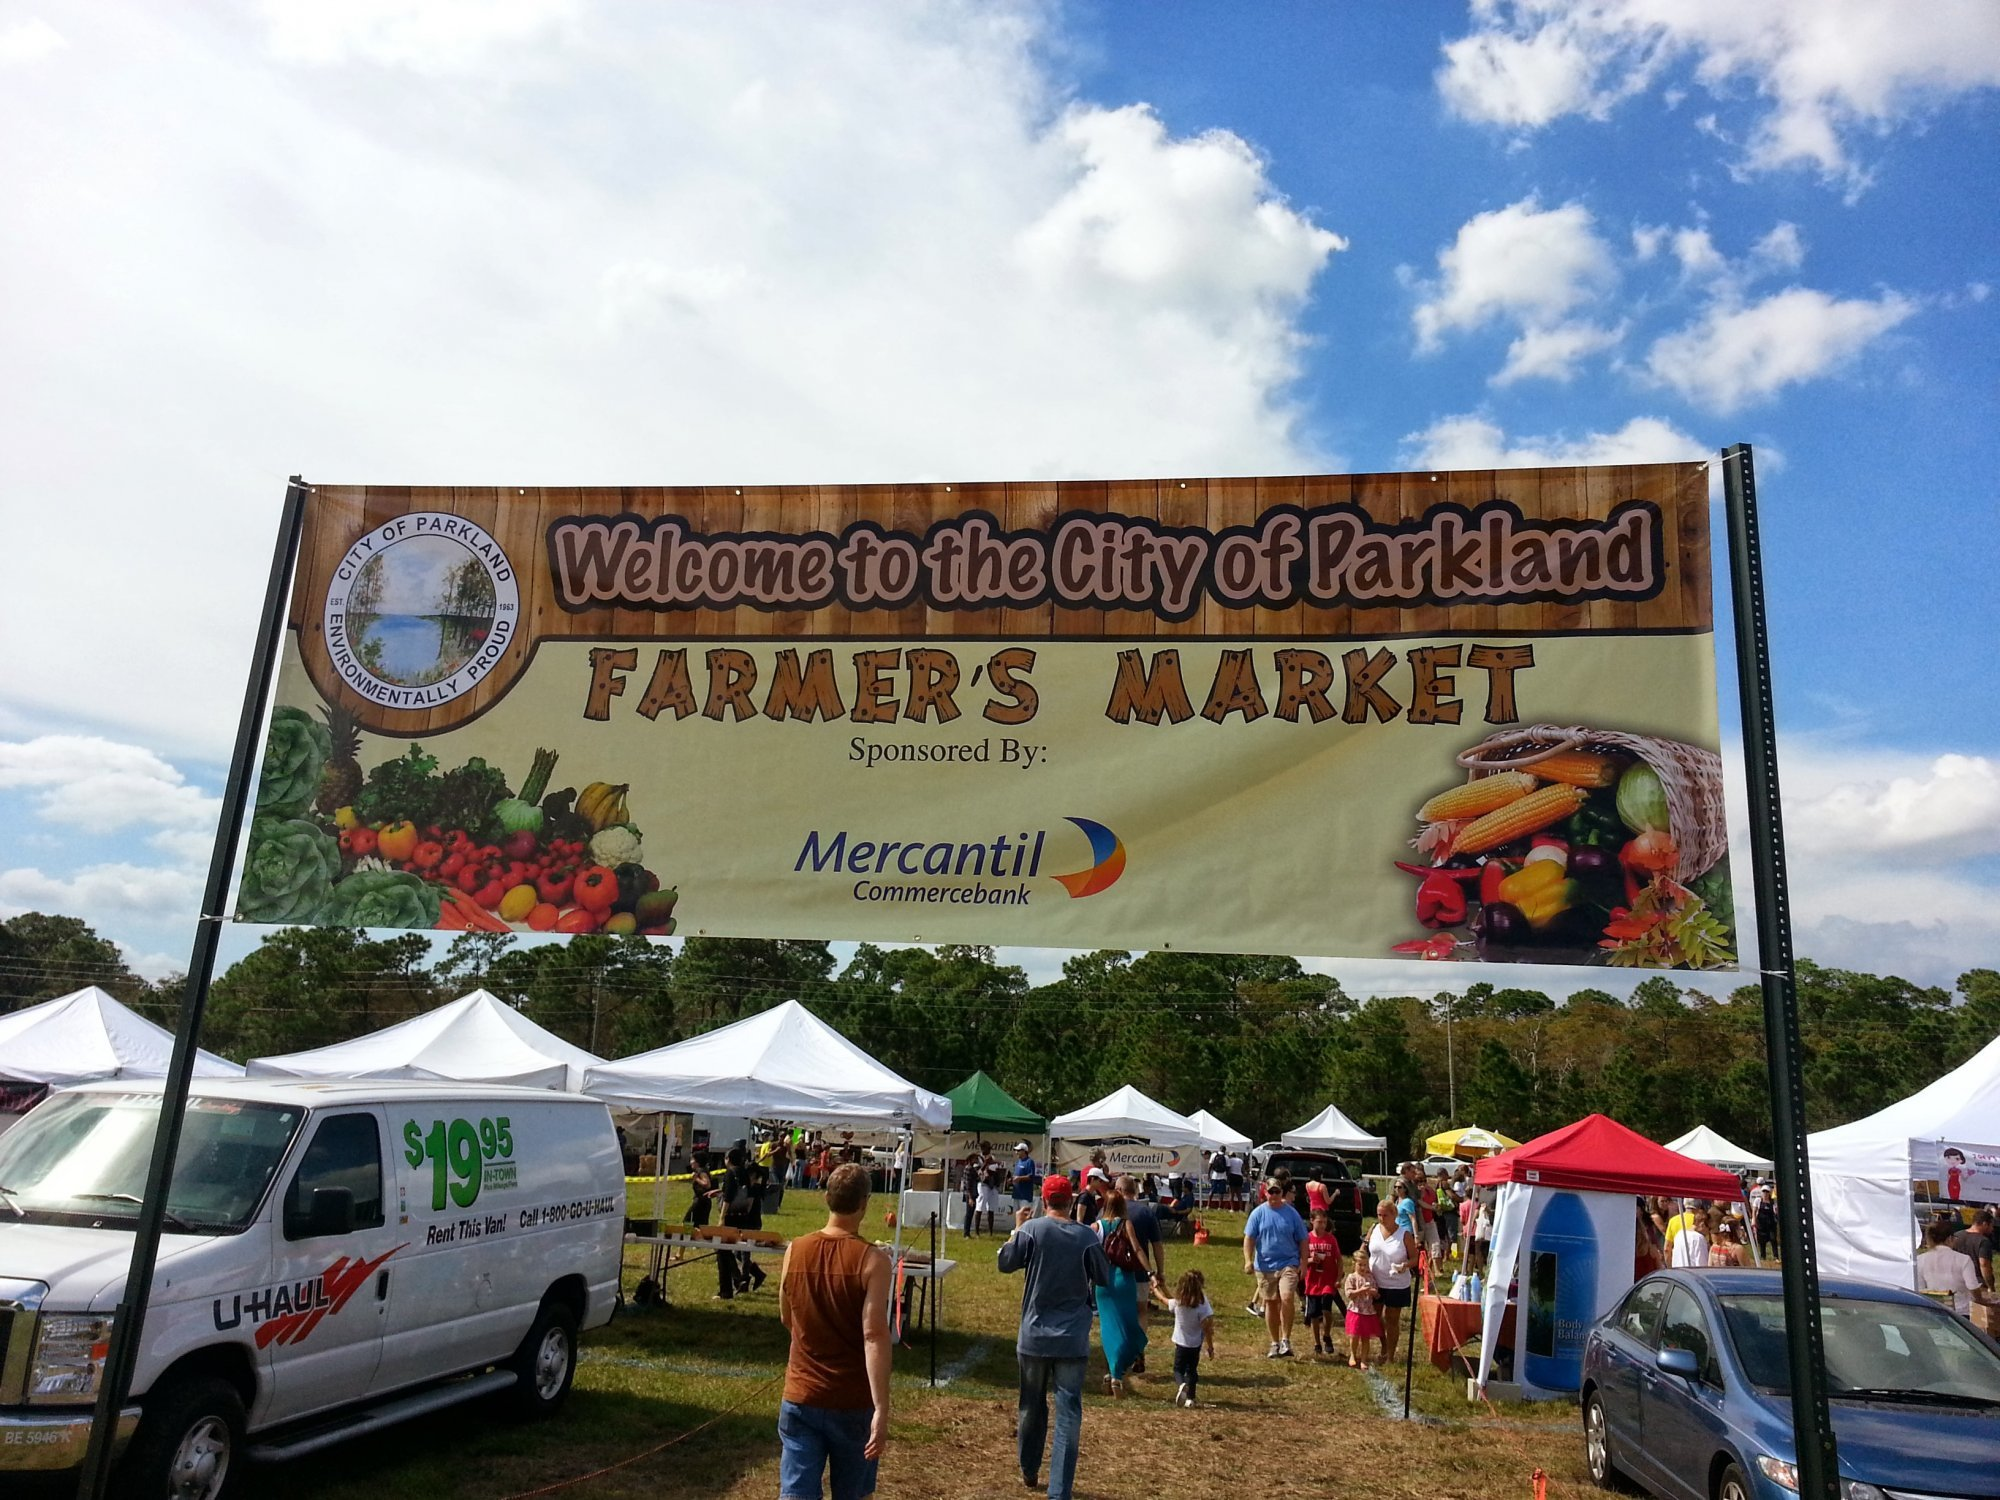 City of Parkland Farmers Market